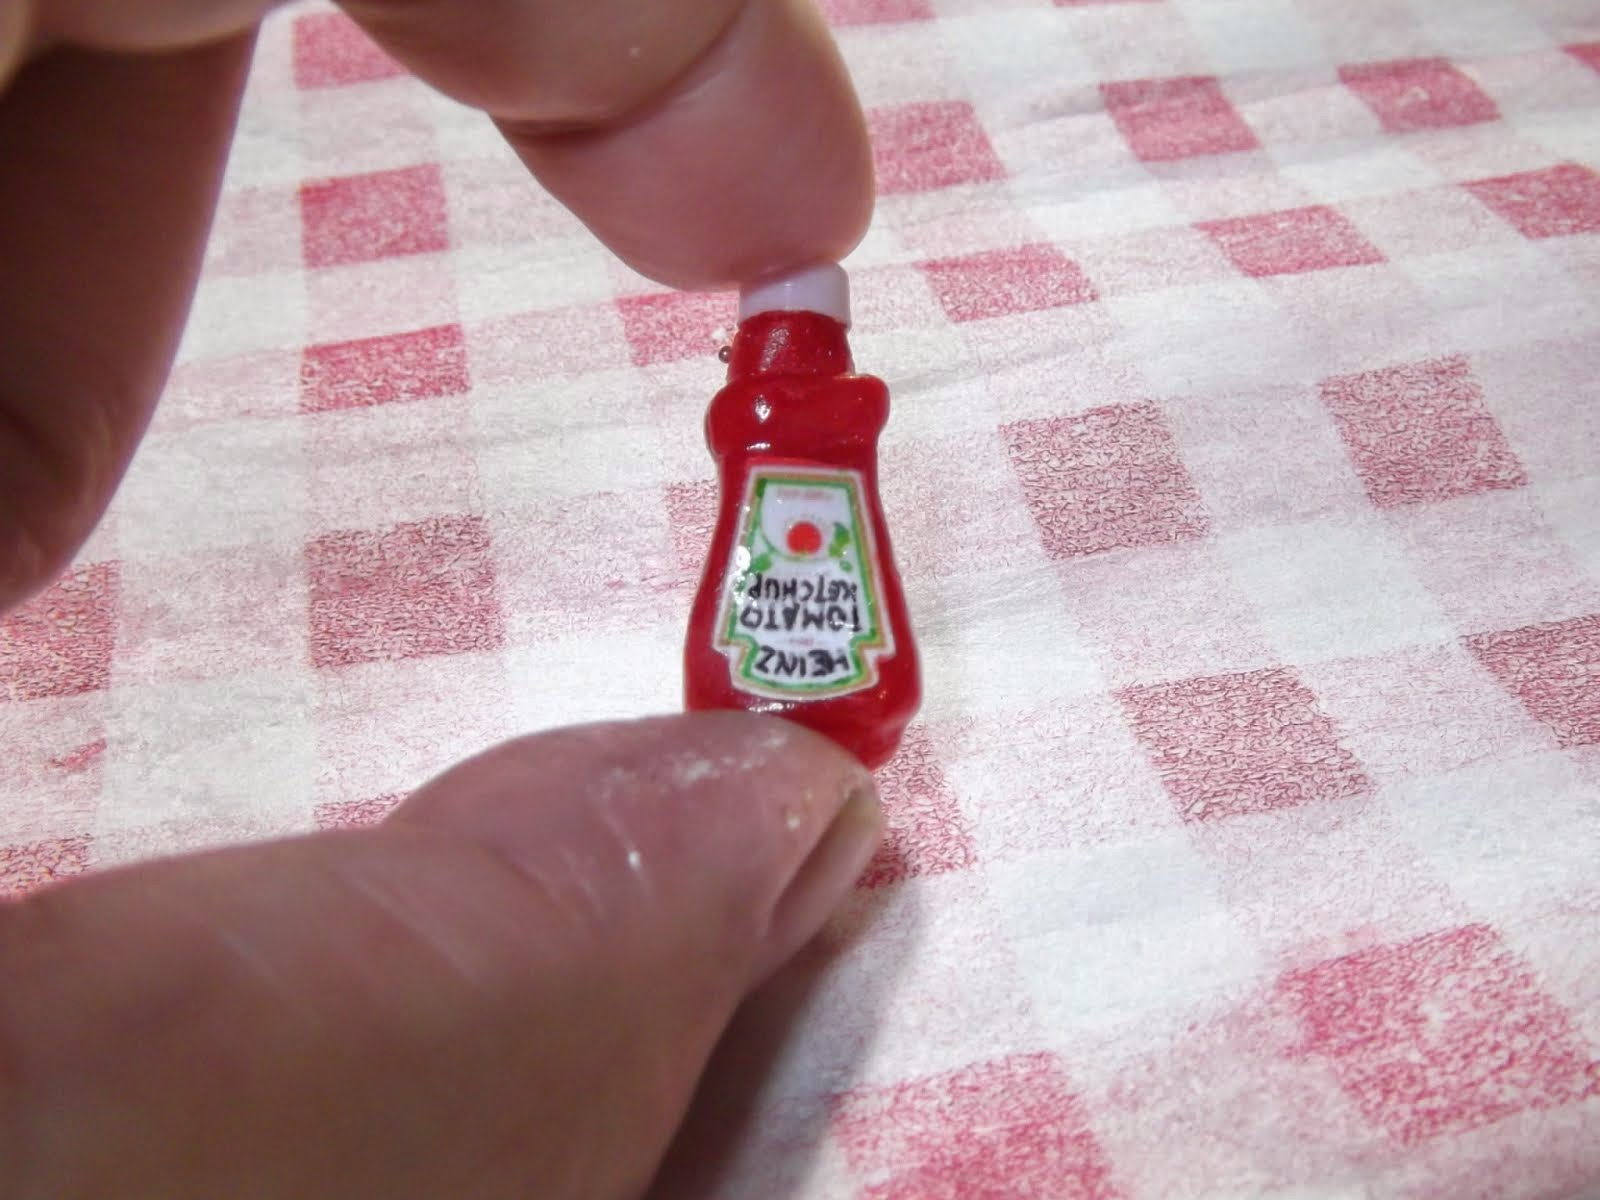 Miniature Heinz ketchup bottle